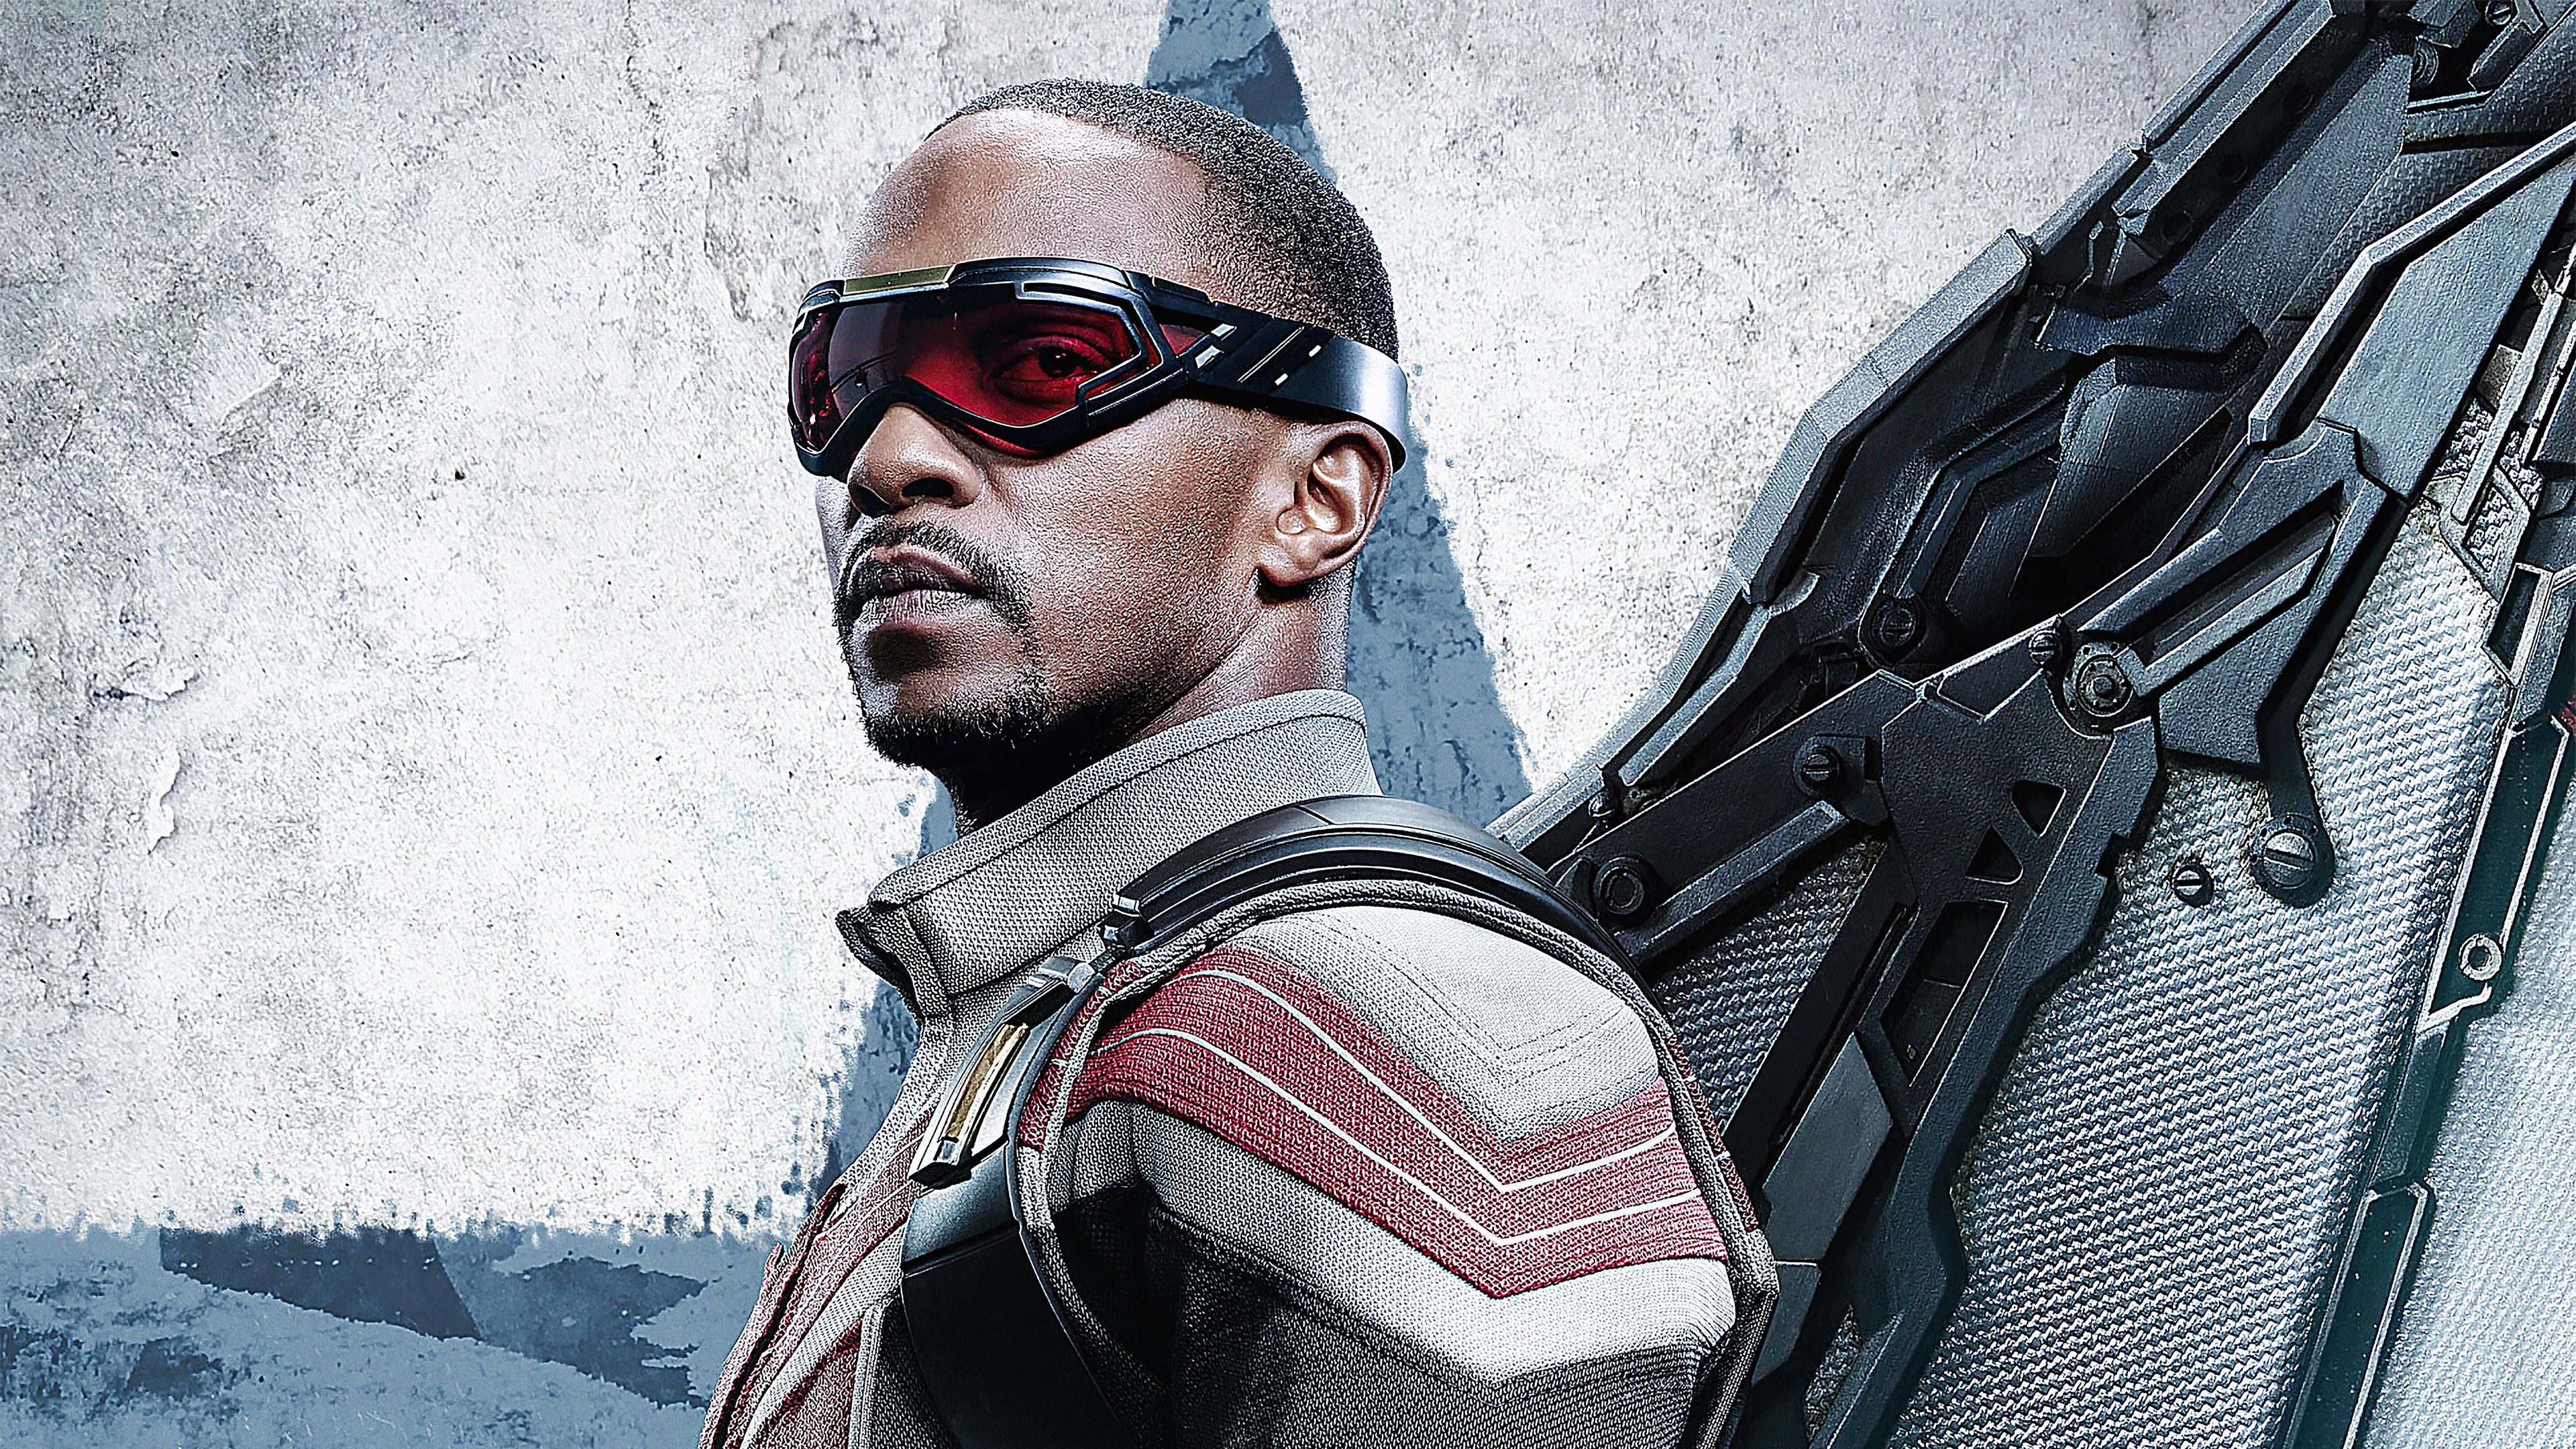 anthony mackie as falcon in the falcon and the winter soldier 4k 1626910648 - Anthony Mackie As Falcon In The Falcon And The Winter Soldier 4k - Anthony Mackie As Falcon In The Falcon And The Winter Soldier 4k wallpapers